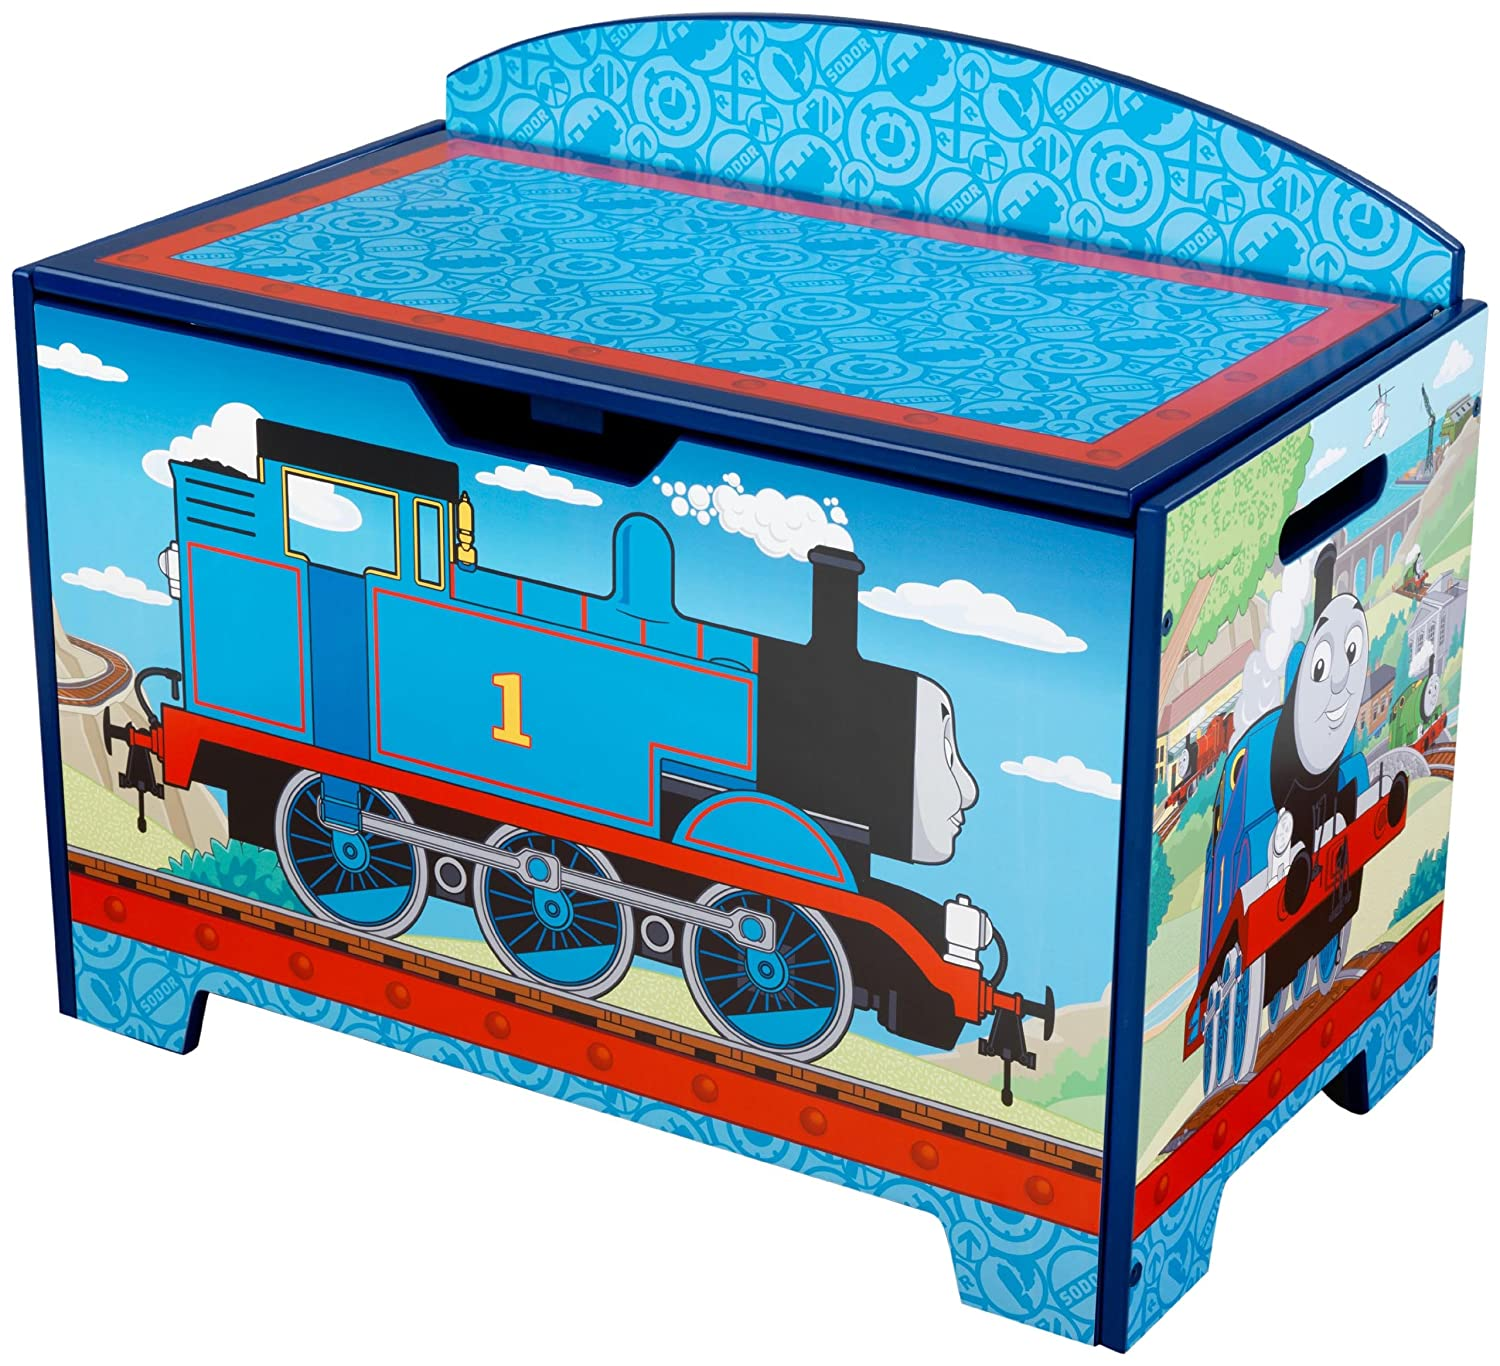 Childrens Jumbo Bedroom Room Tidy Toy Storage Chest Box Trunk: KidKraft Thomas And Friends Toy Box